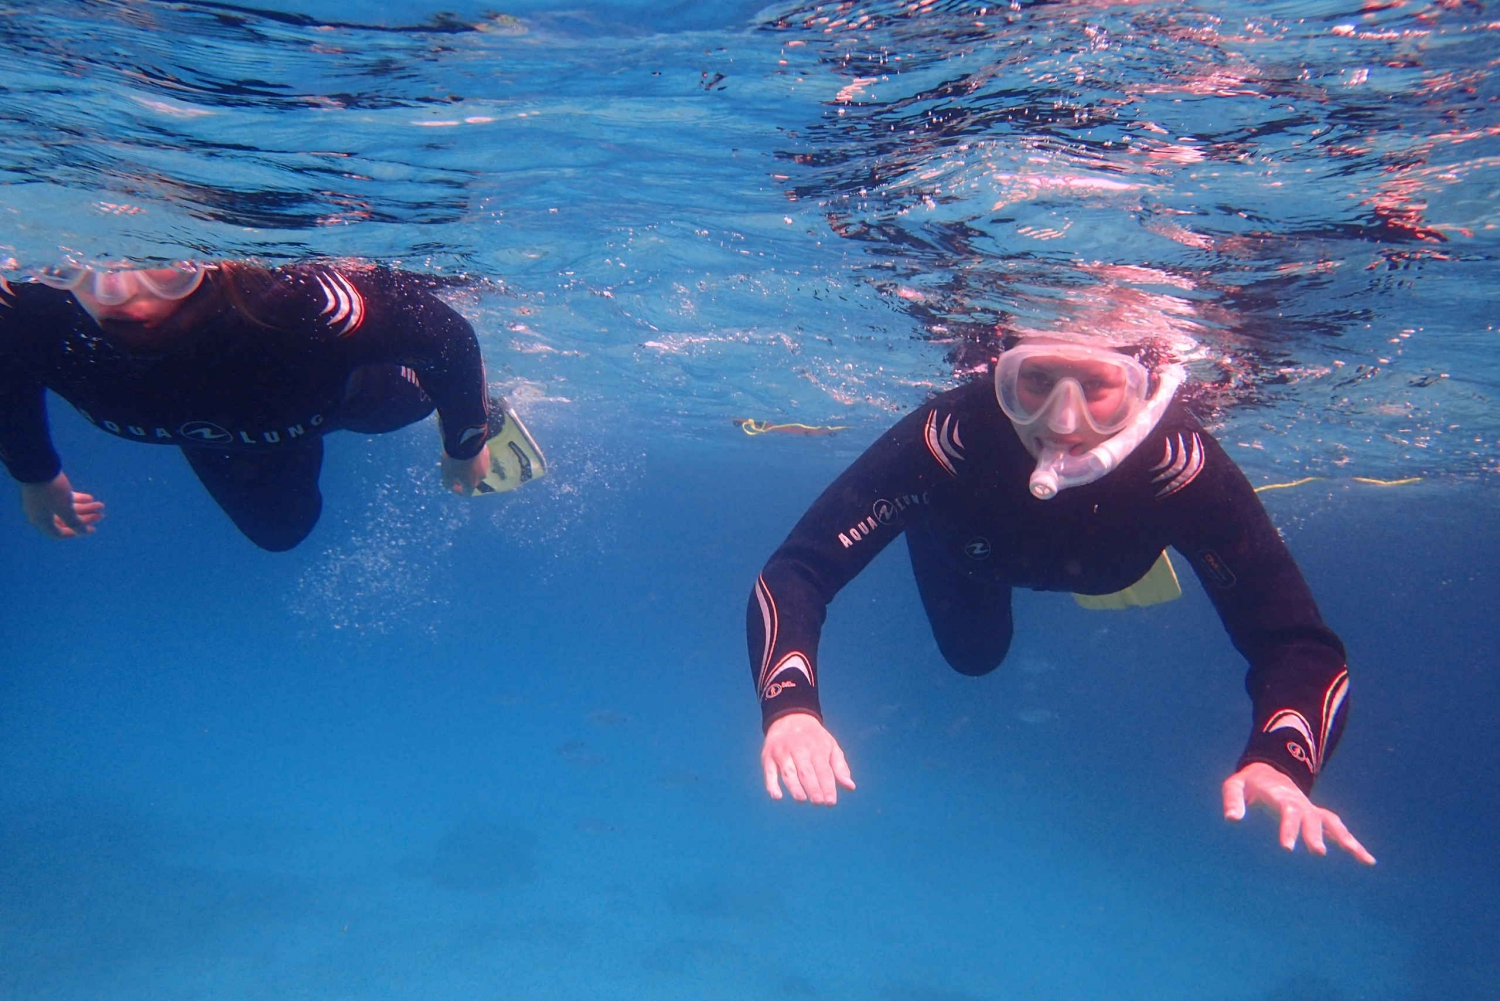 Snorkeling in a Beautiful Nature Reserve